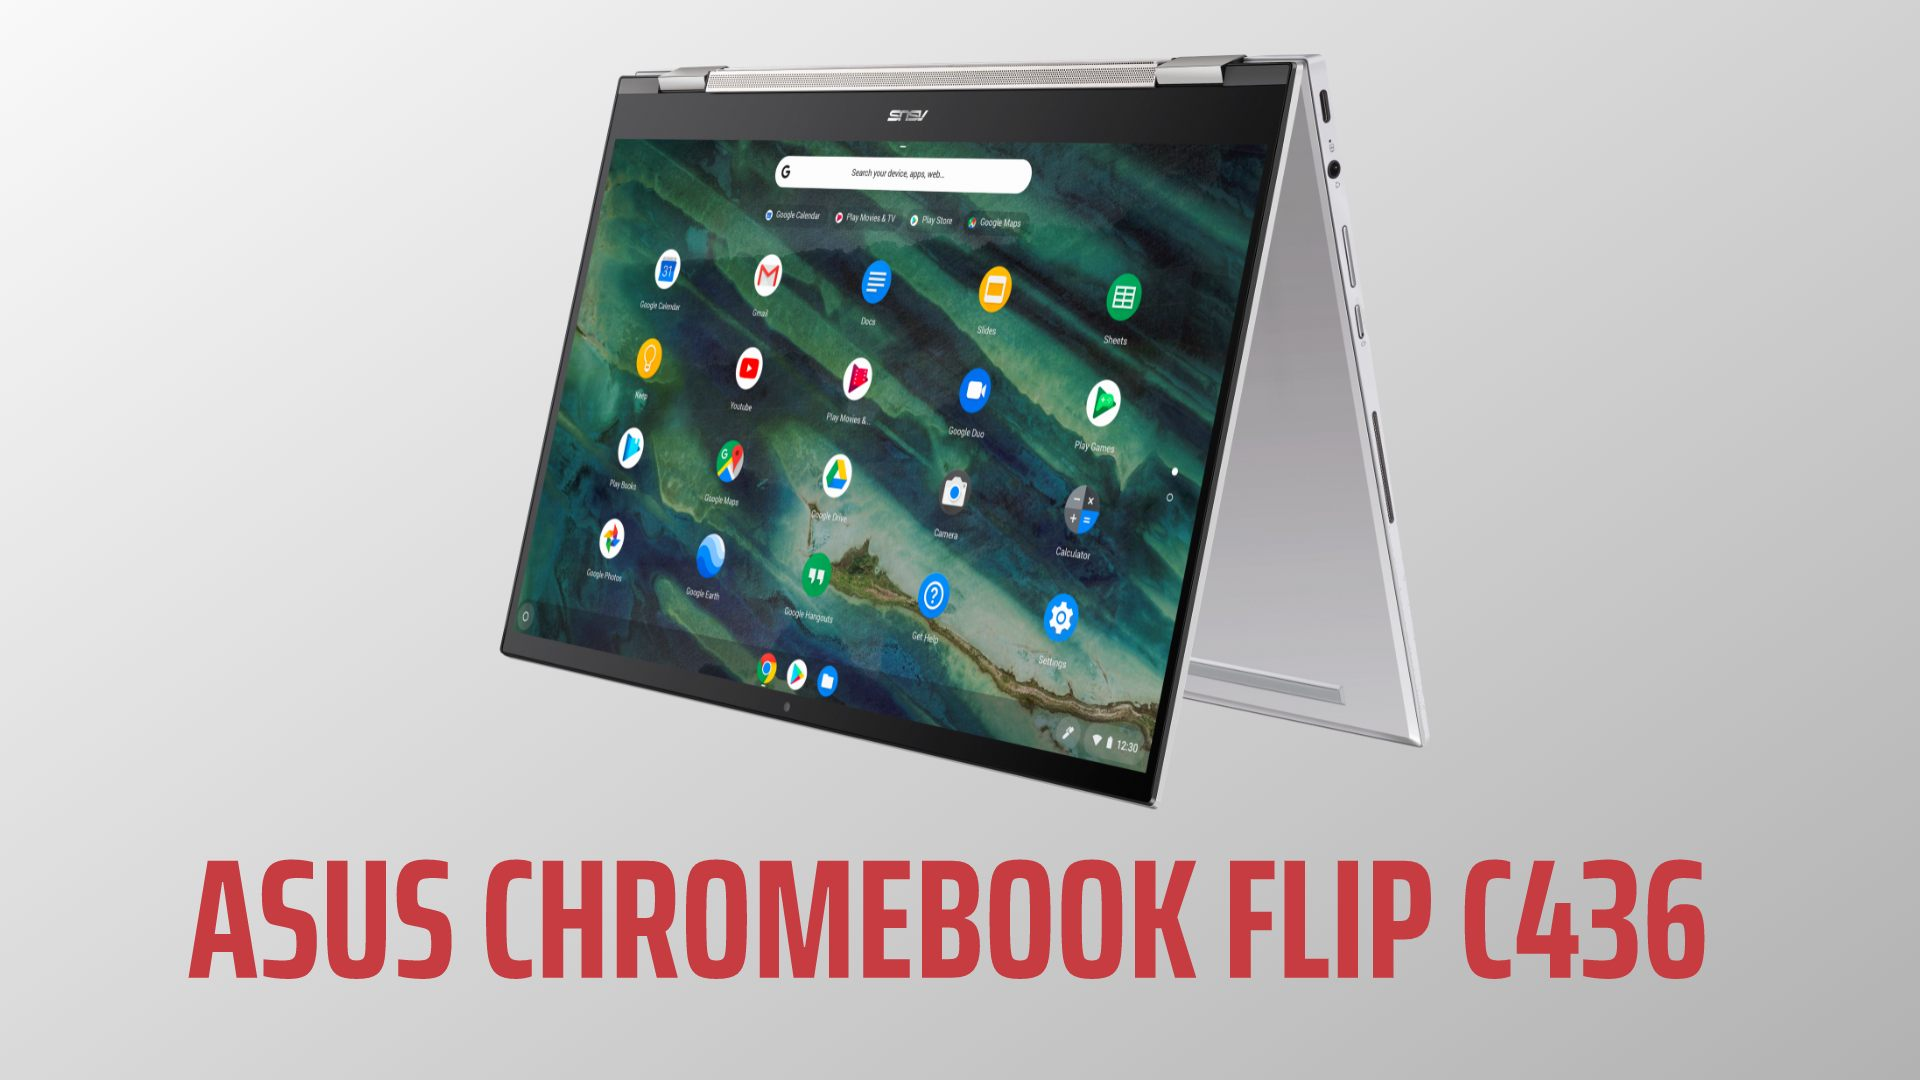 ASUS delivers as the Chromebook Flip C436 arrives at CES 2020